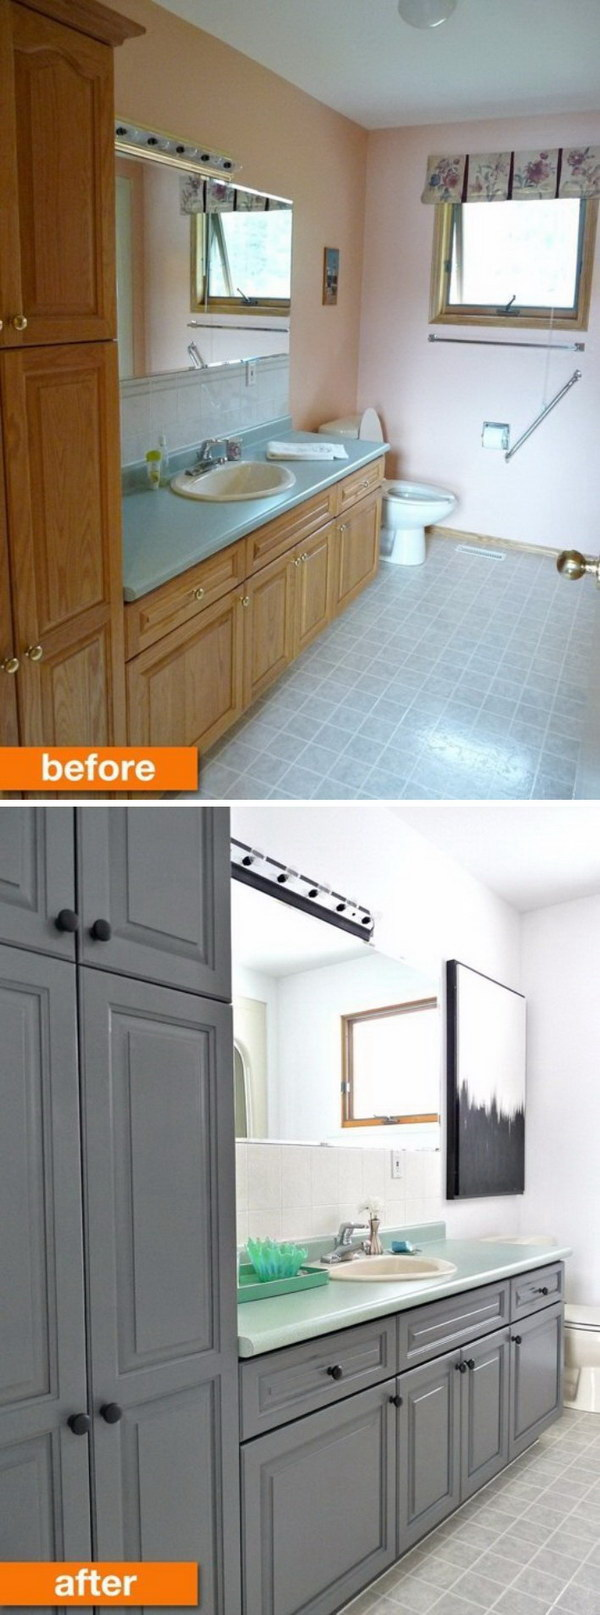 Before And After Makeovers Awesome Bathroom Remodeling Ideas - Budget friendly bathroom remodels